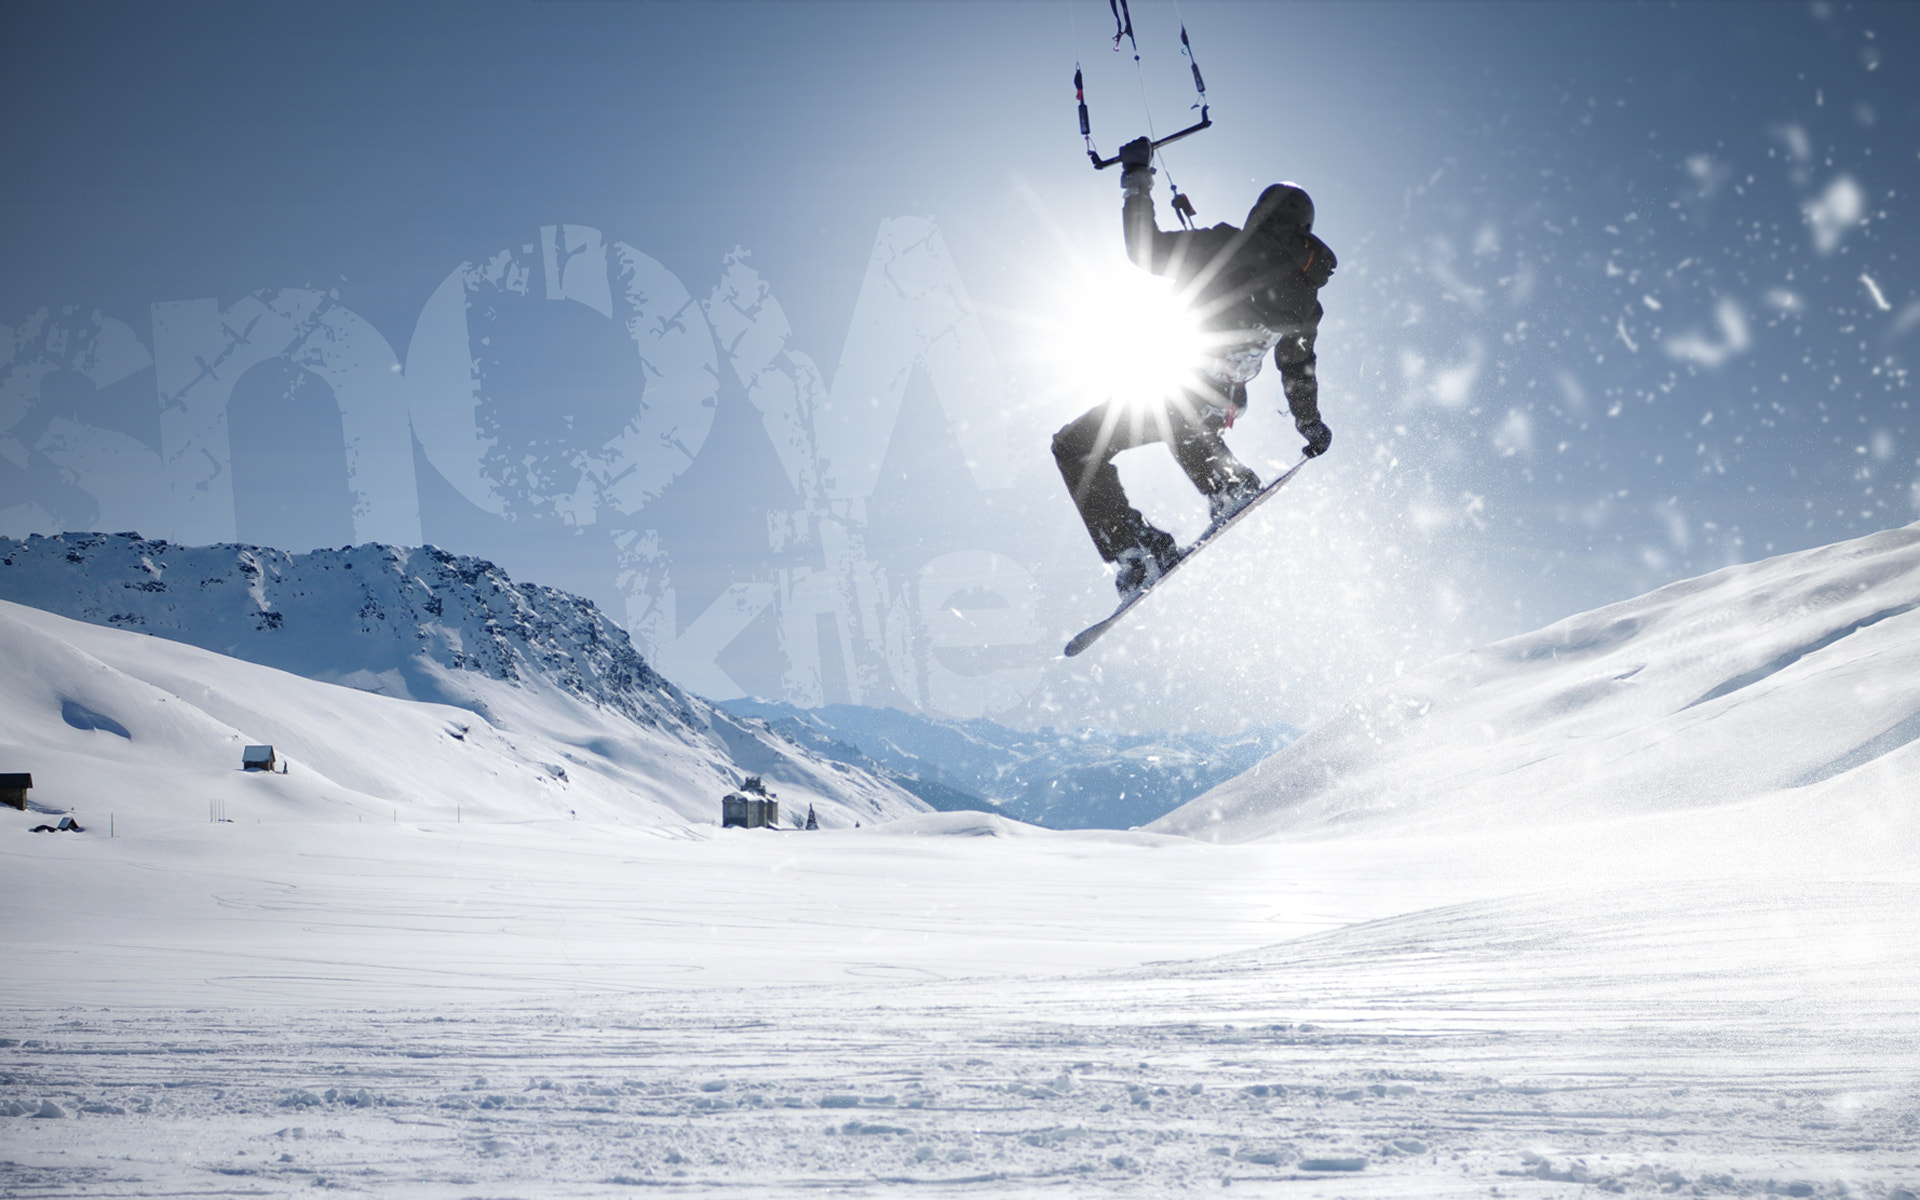 Photograph Snow Kite by Florian le Grelle on 500px